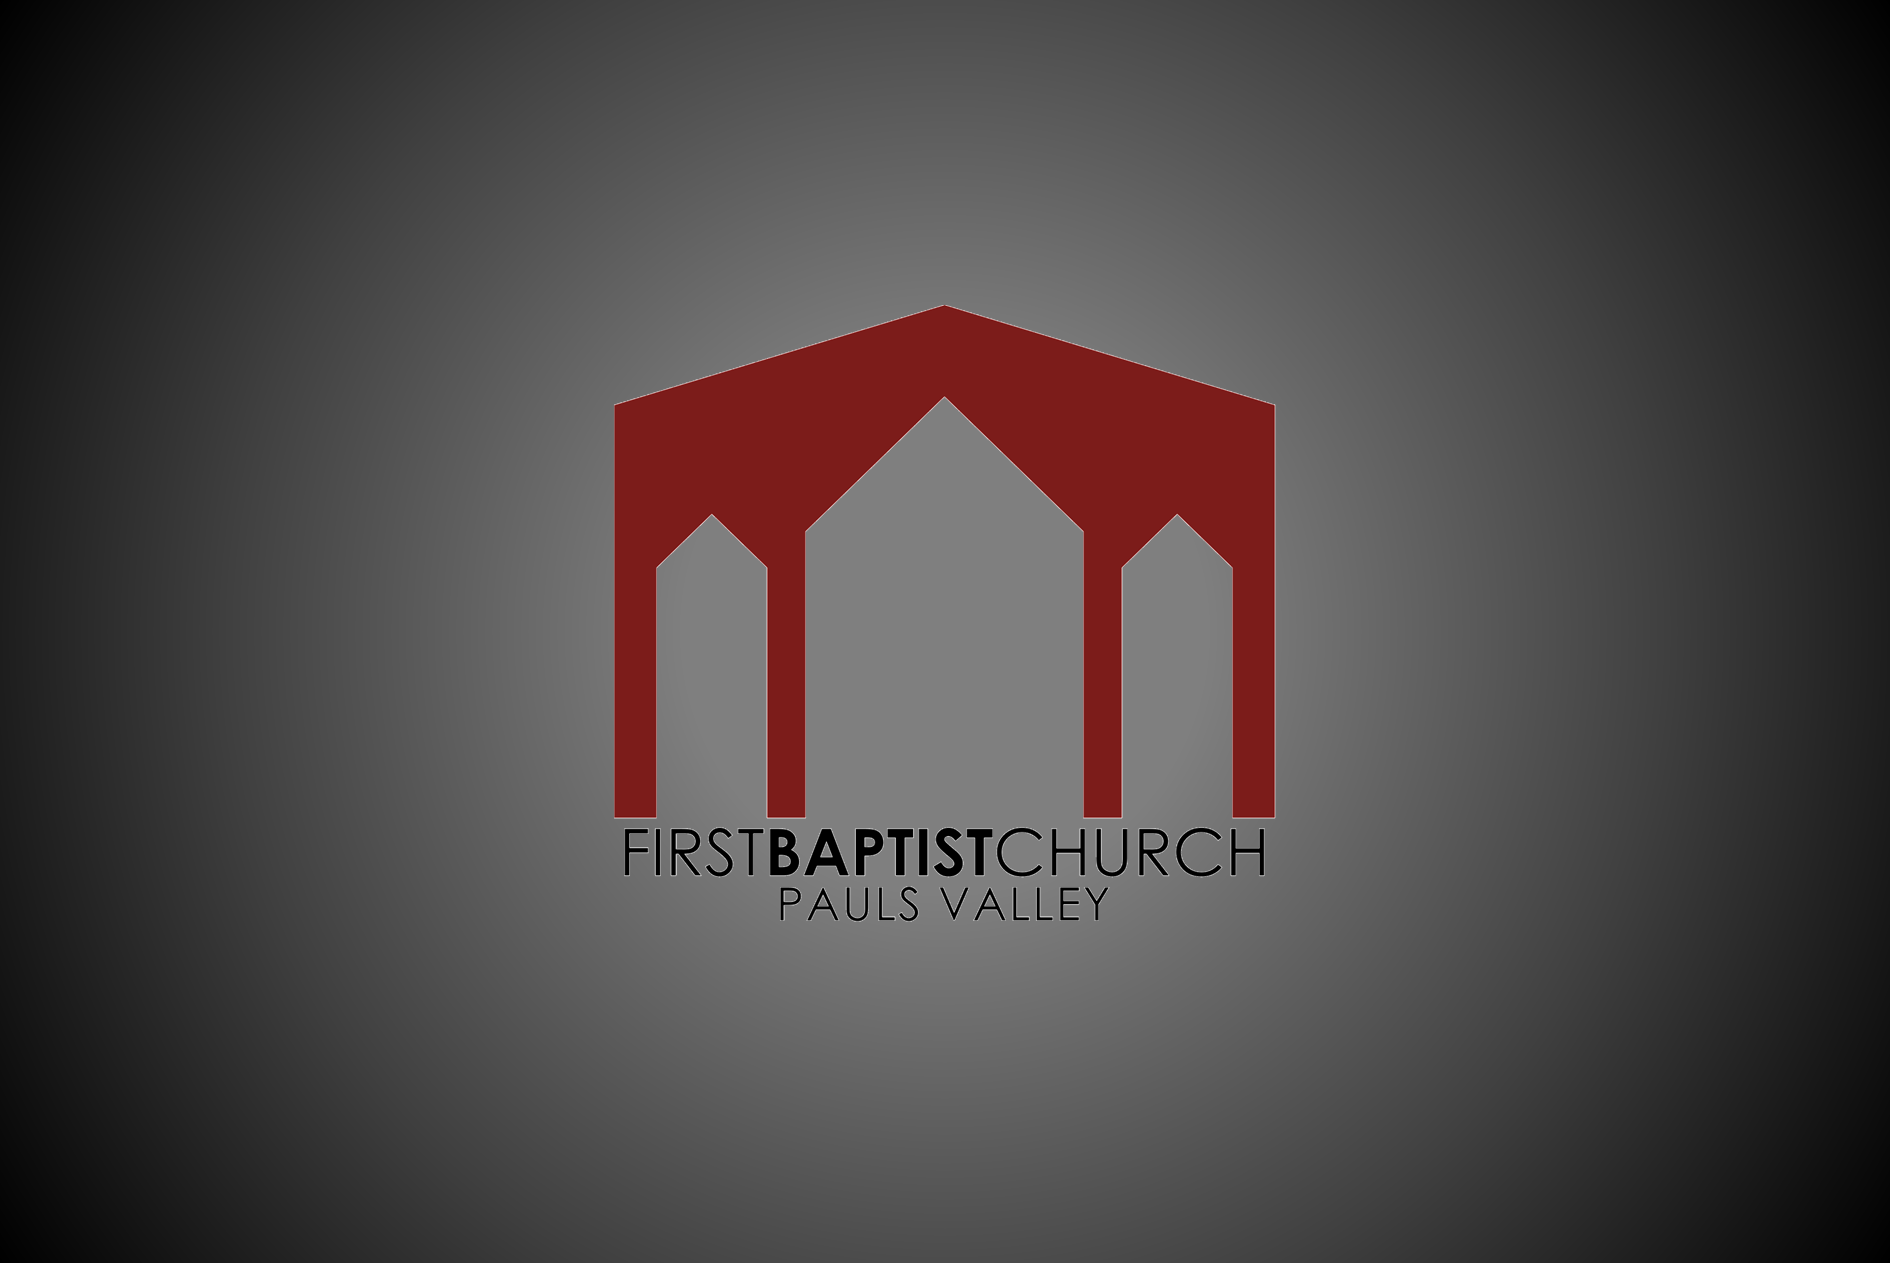 First Baptist Church Pauls Valey